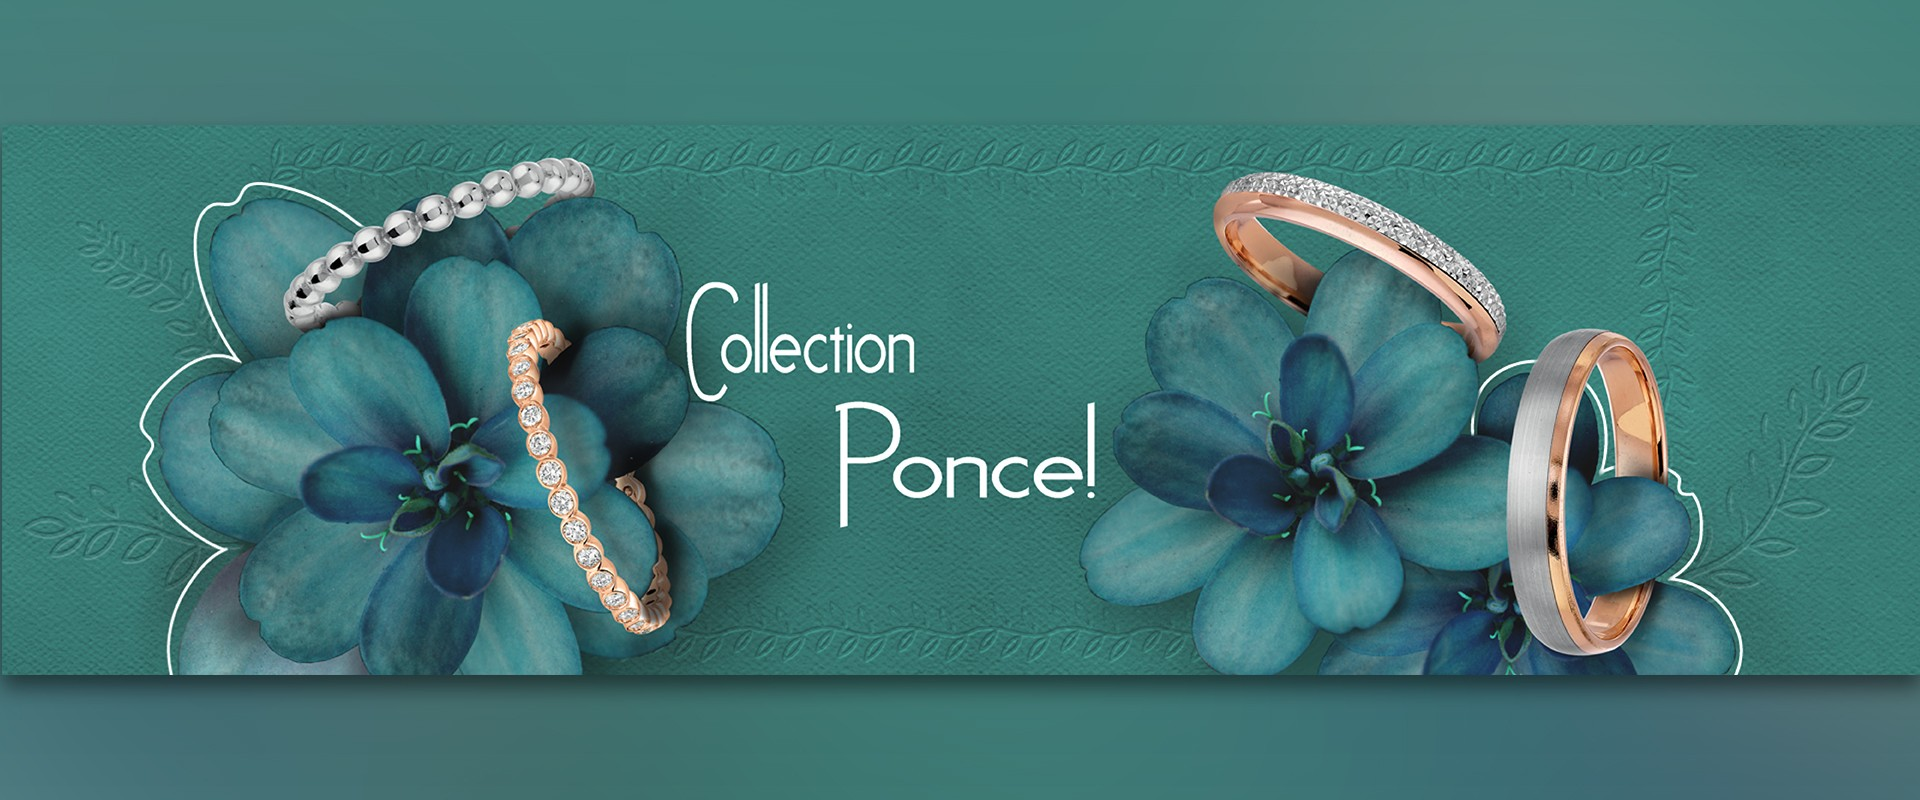 Collection Ponce!